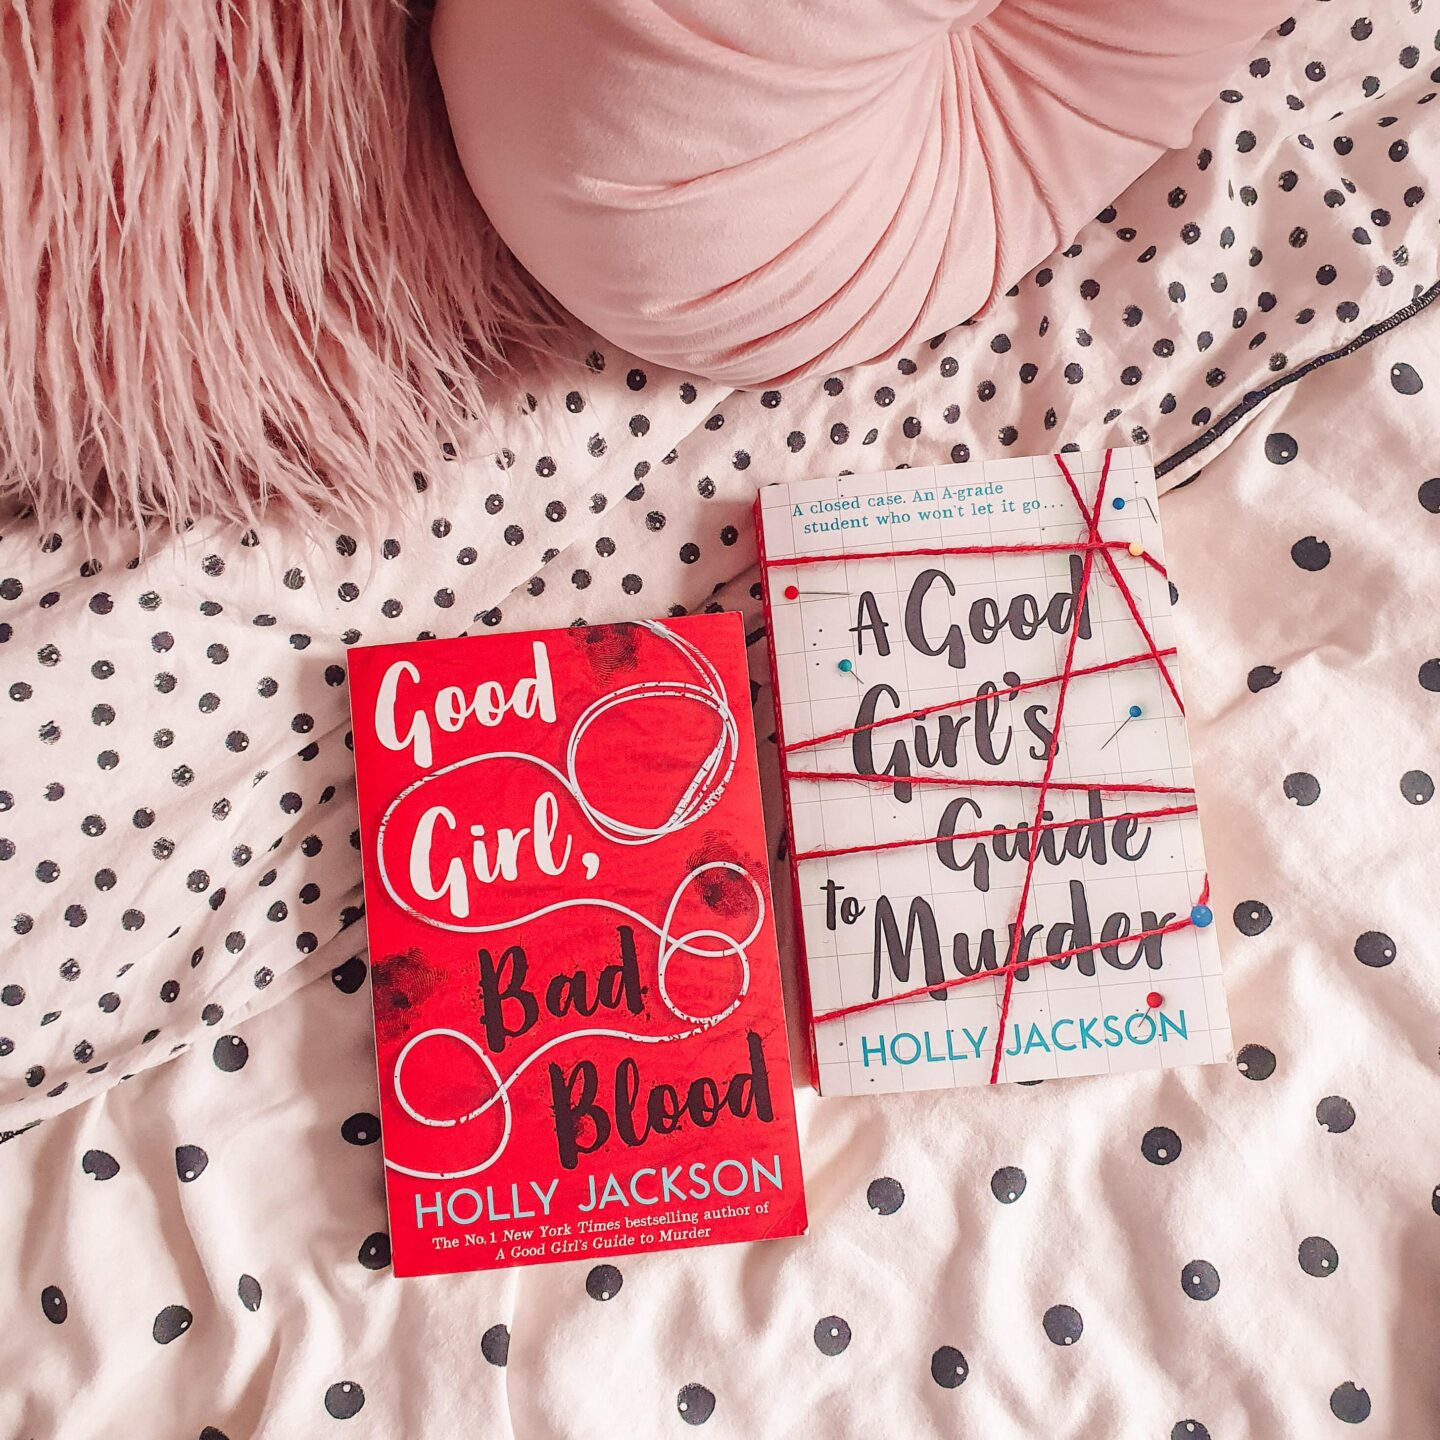 A Good Girls Guide to Murder and Good Girl Bad Blood Book Review